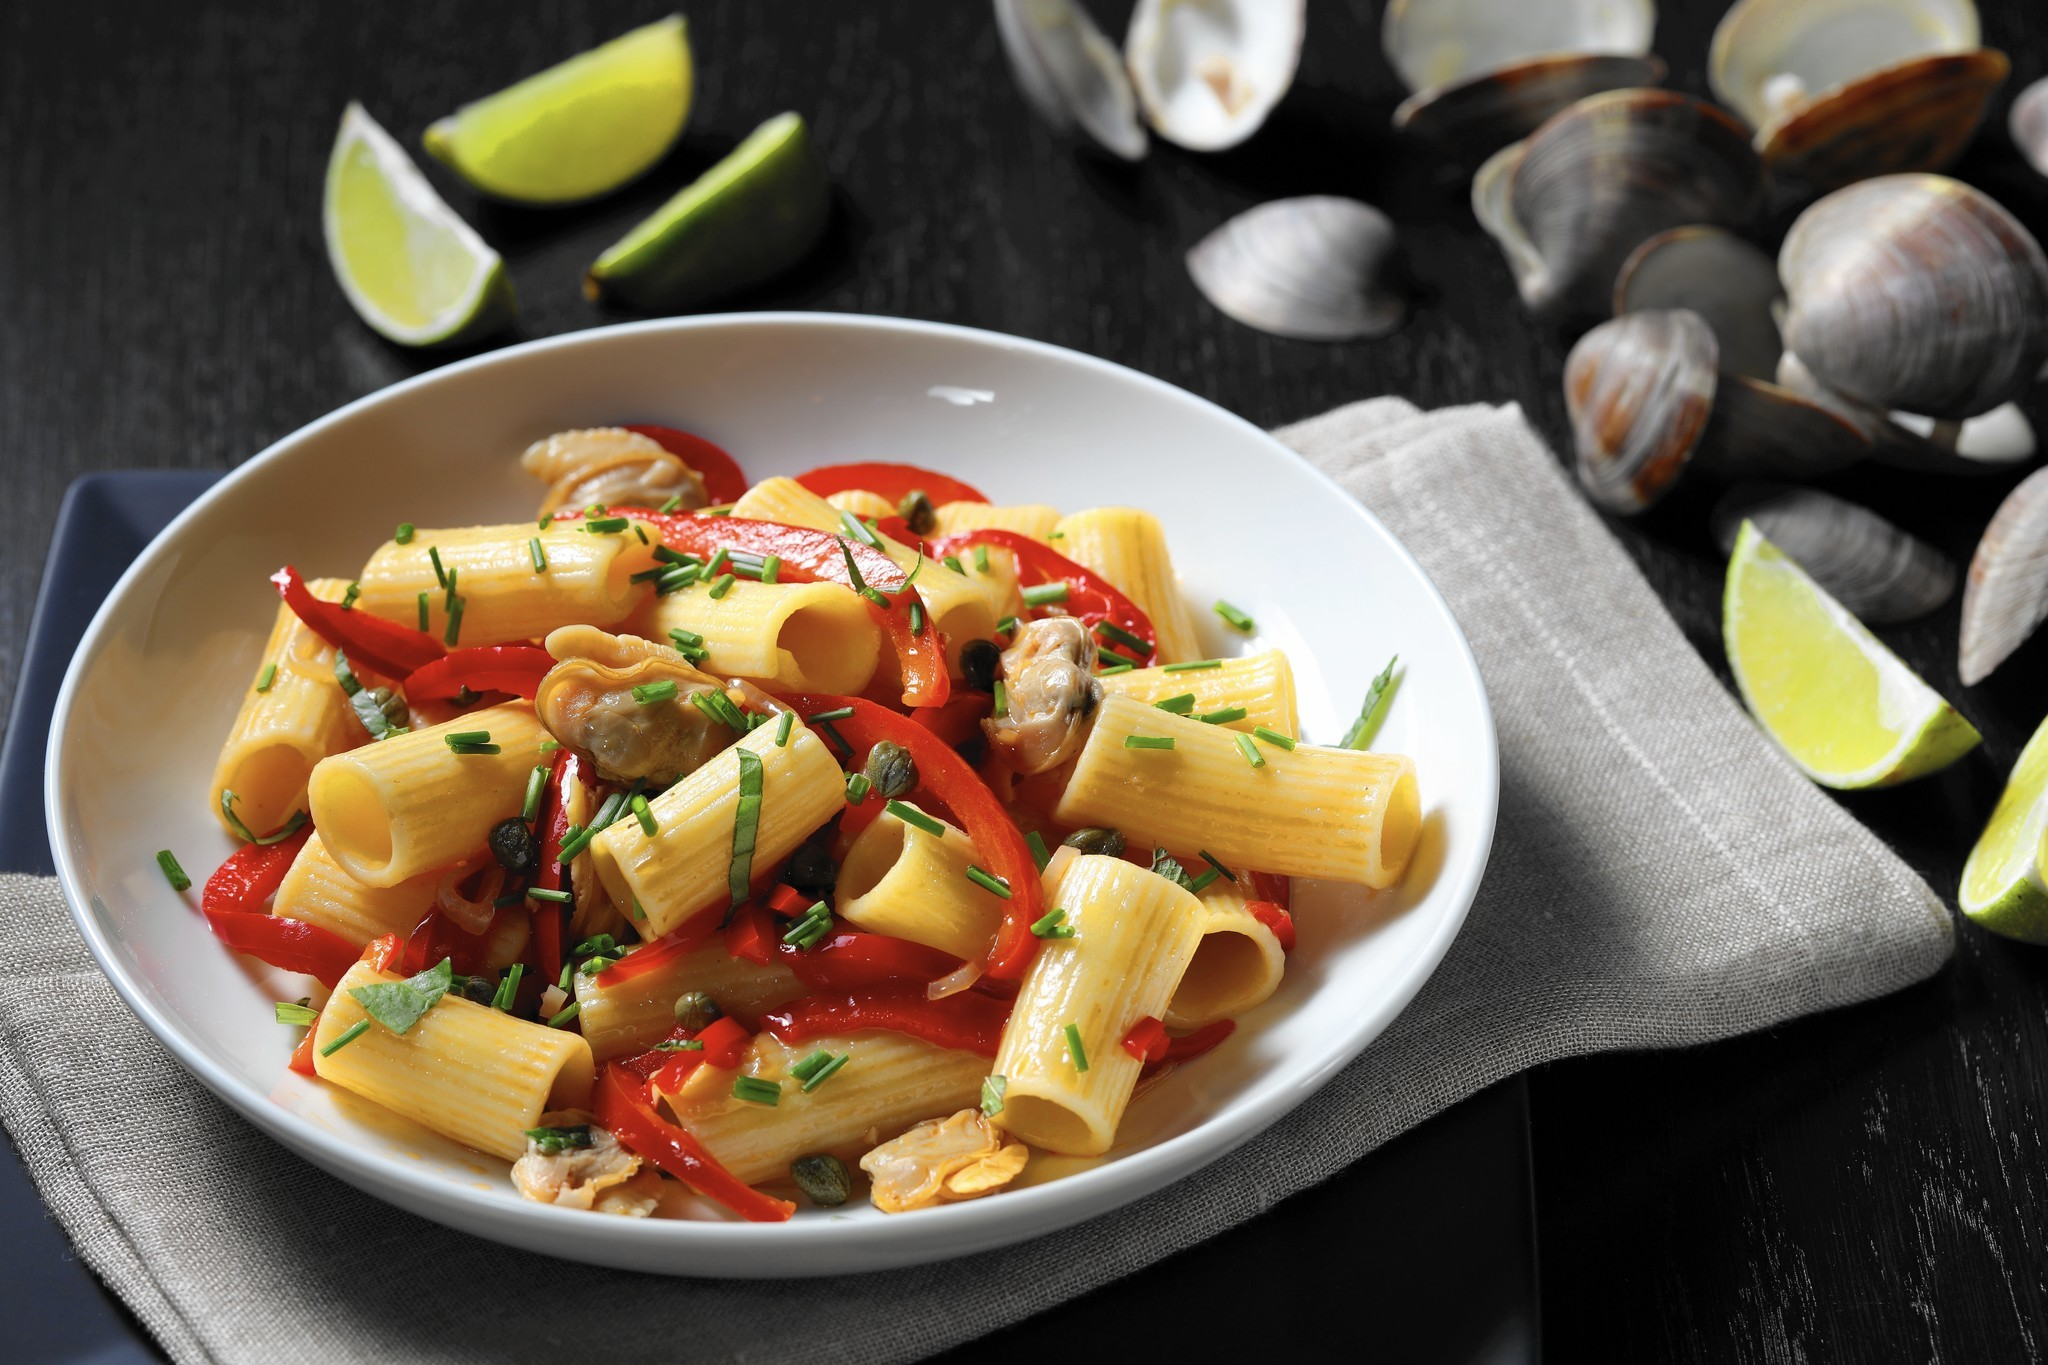 Steamed clams over pasta captures summer vacation memories - Chicago ...